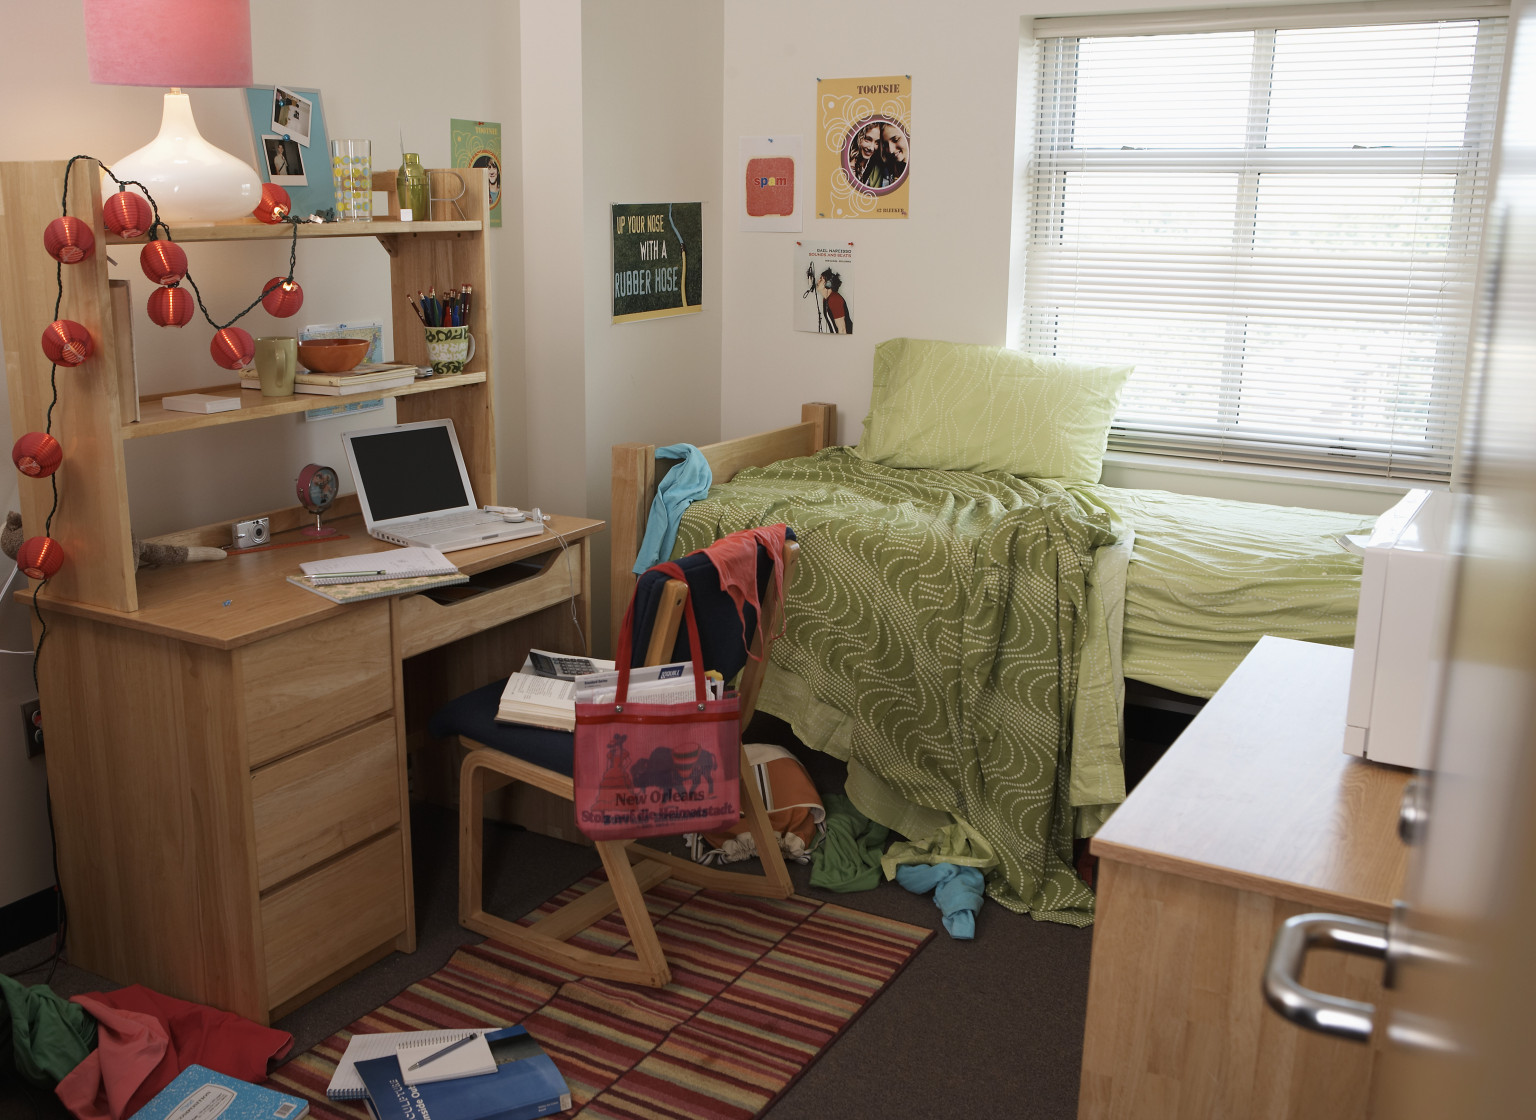 Diy dorm room design huffpost - How to decorate a single room ...